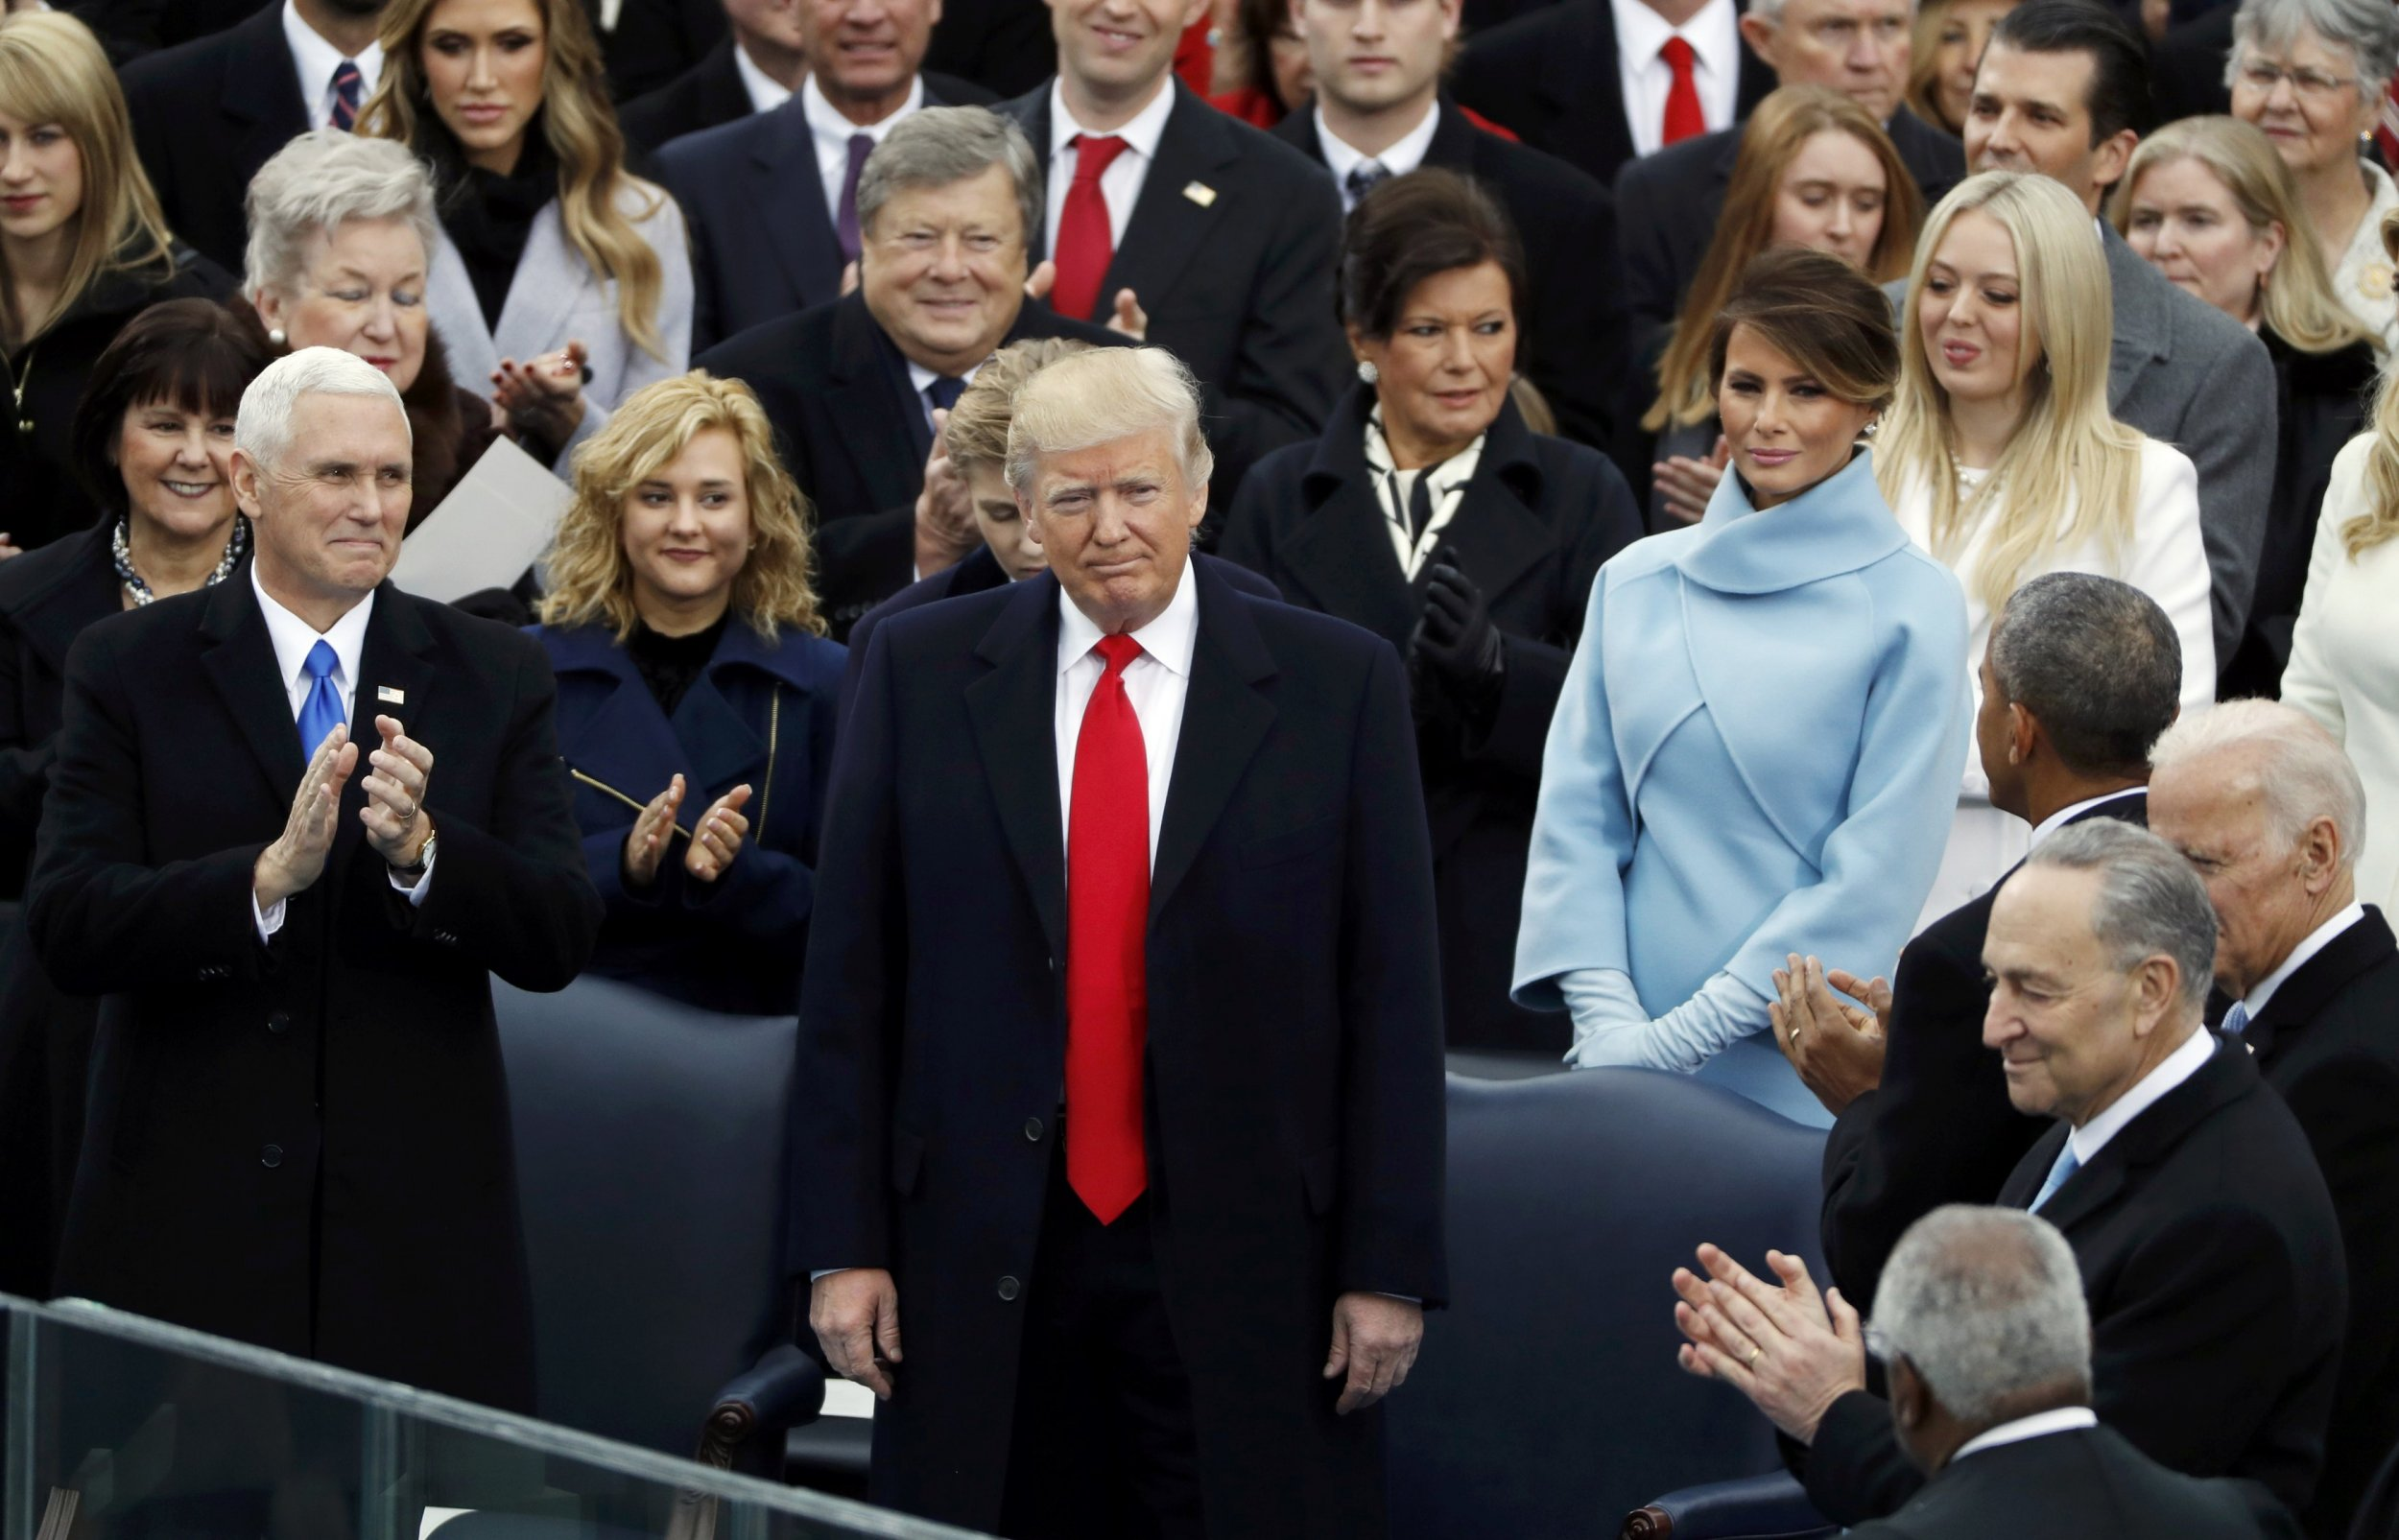 trump_inauguration_speech_0120